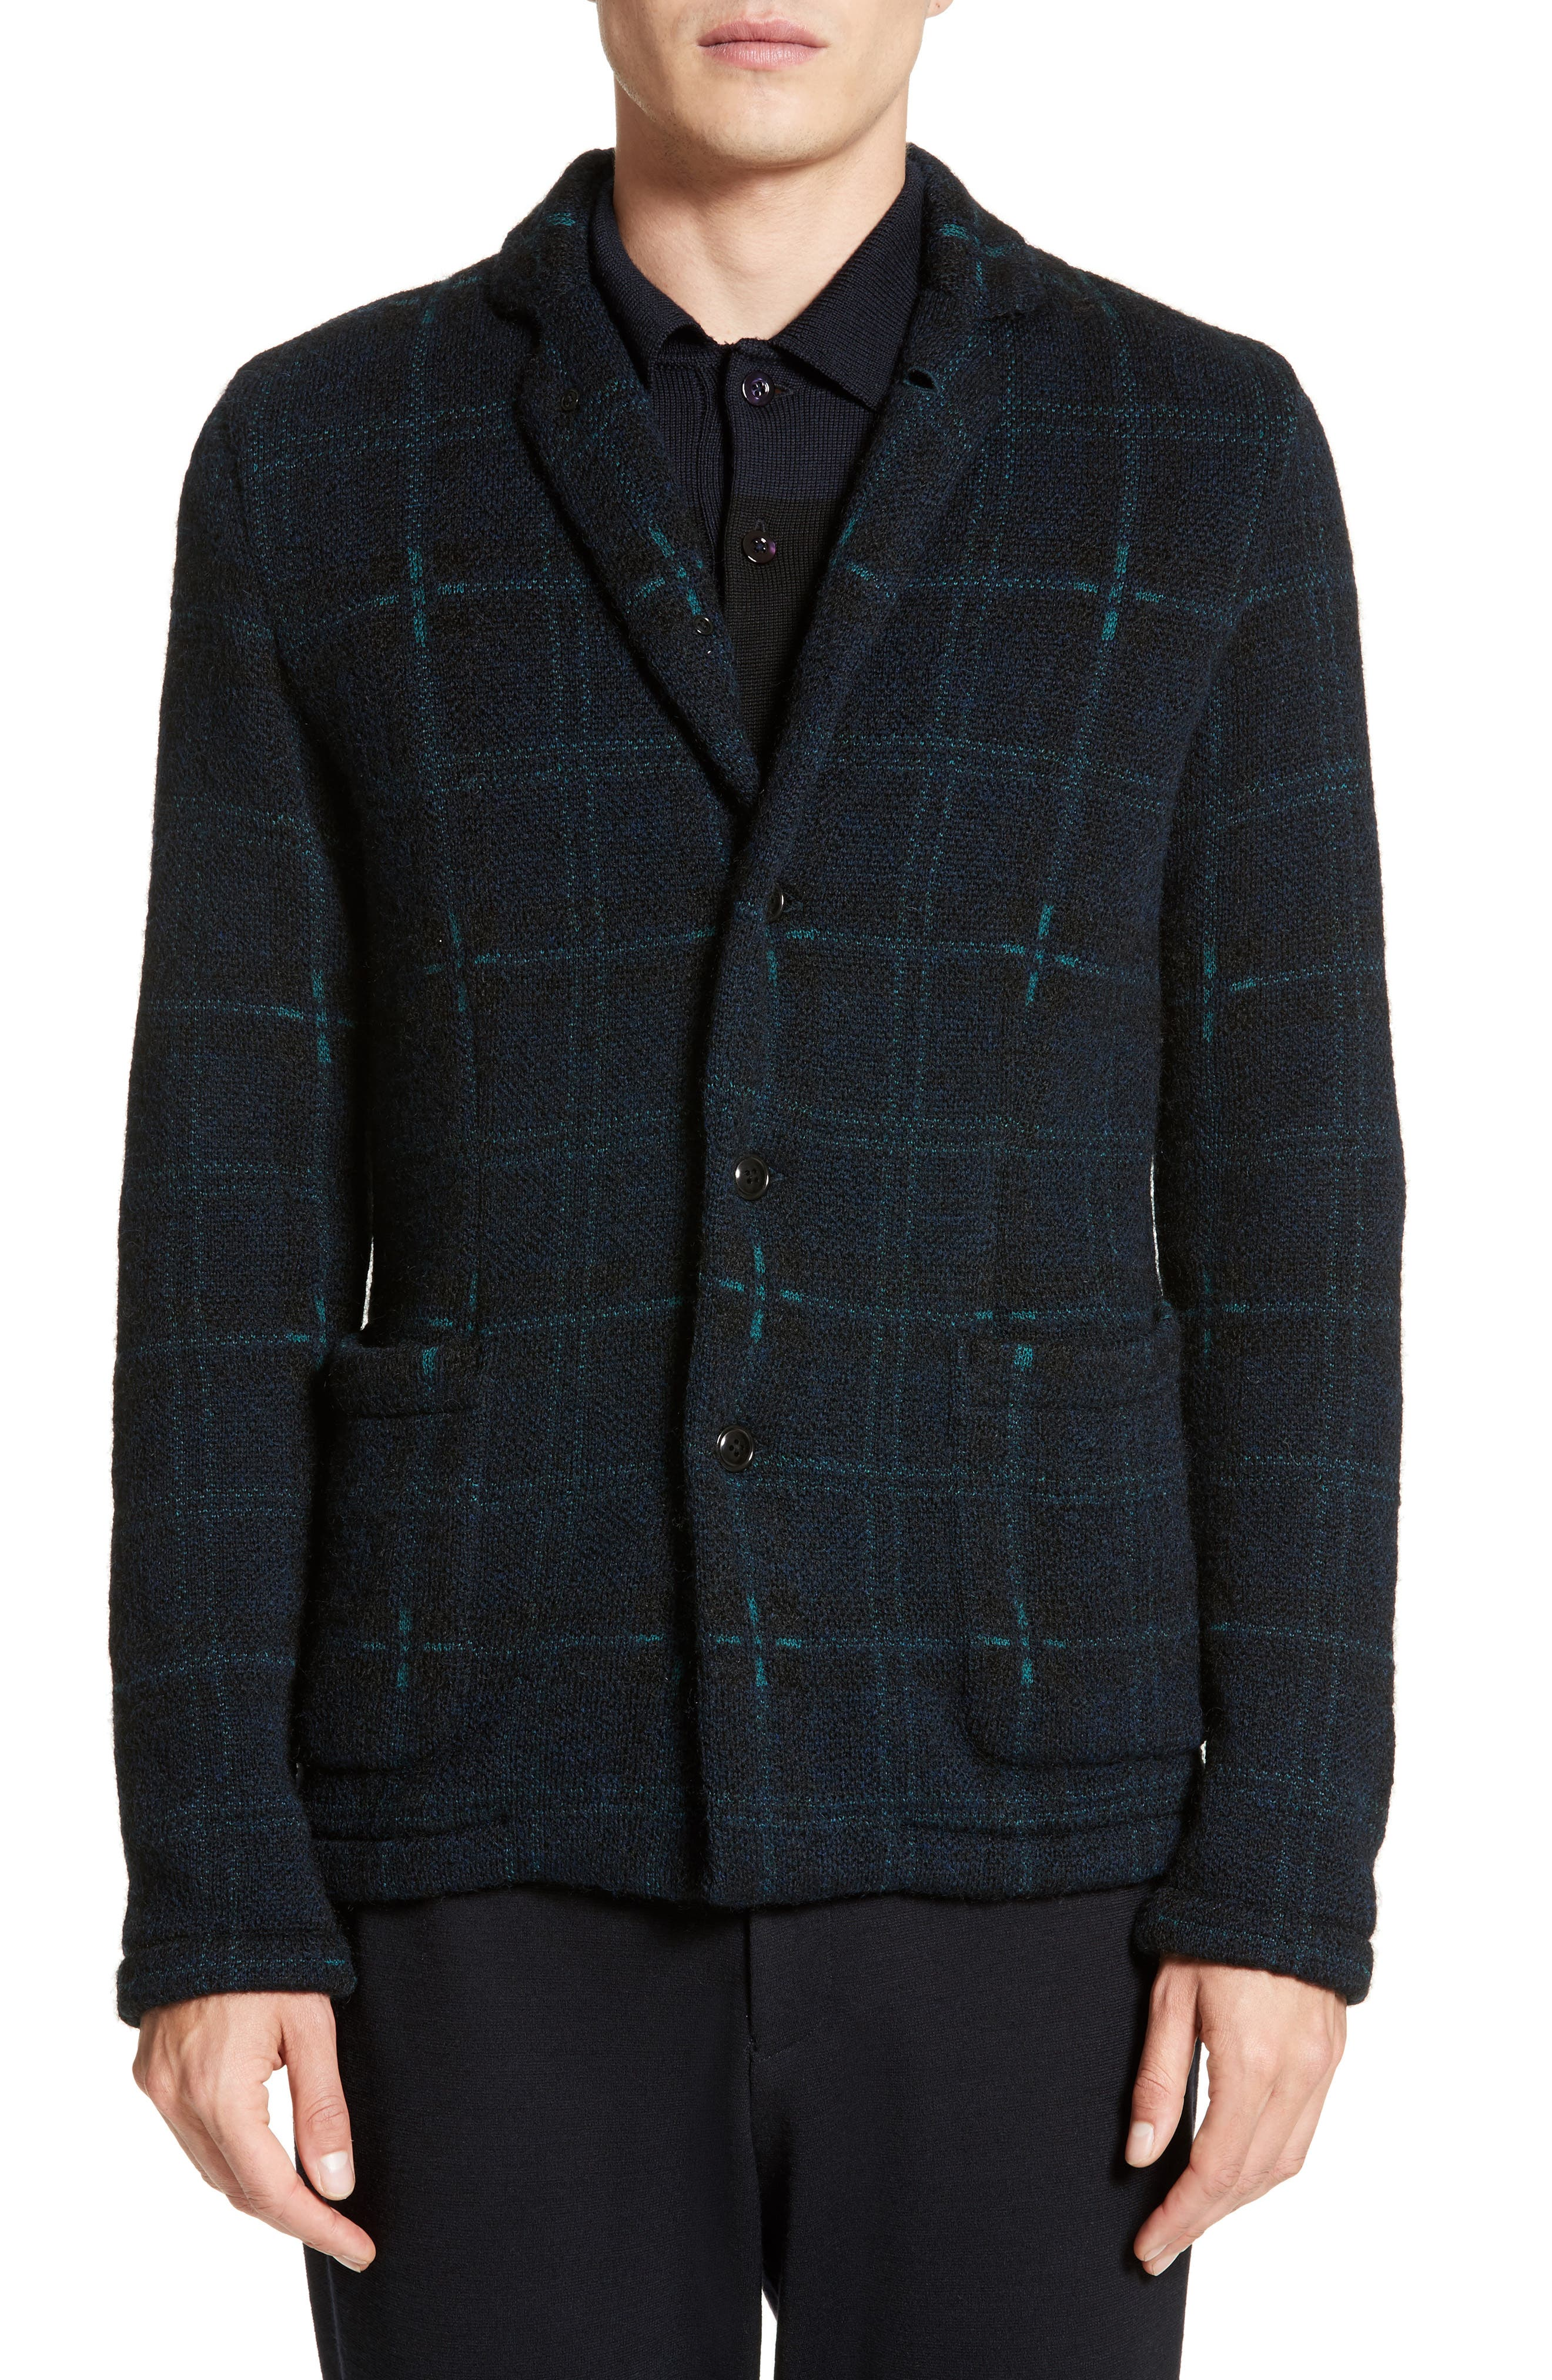 Wool Blend Knit Sportcoat,                         Main,                         color, 410